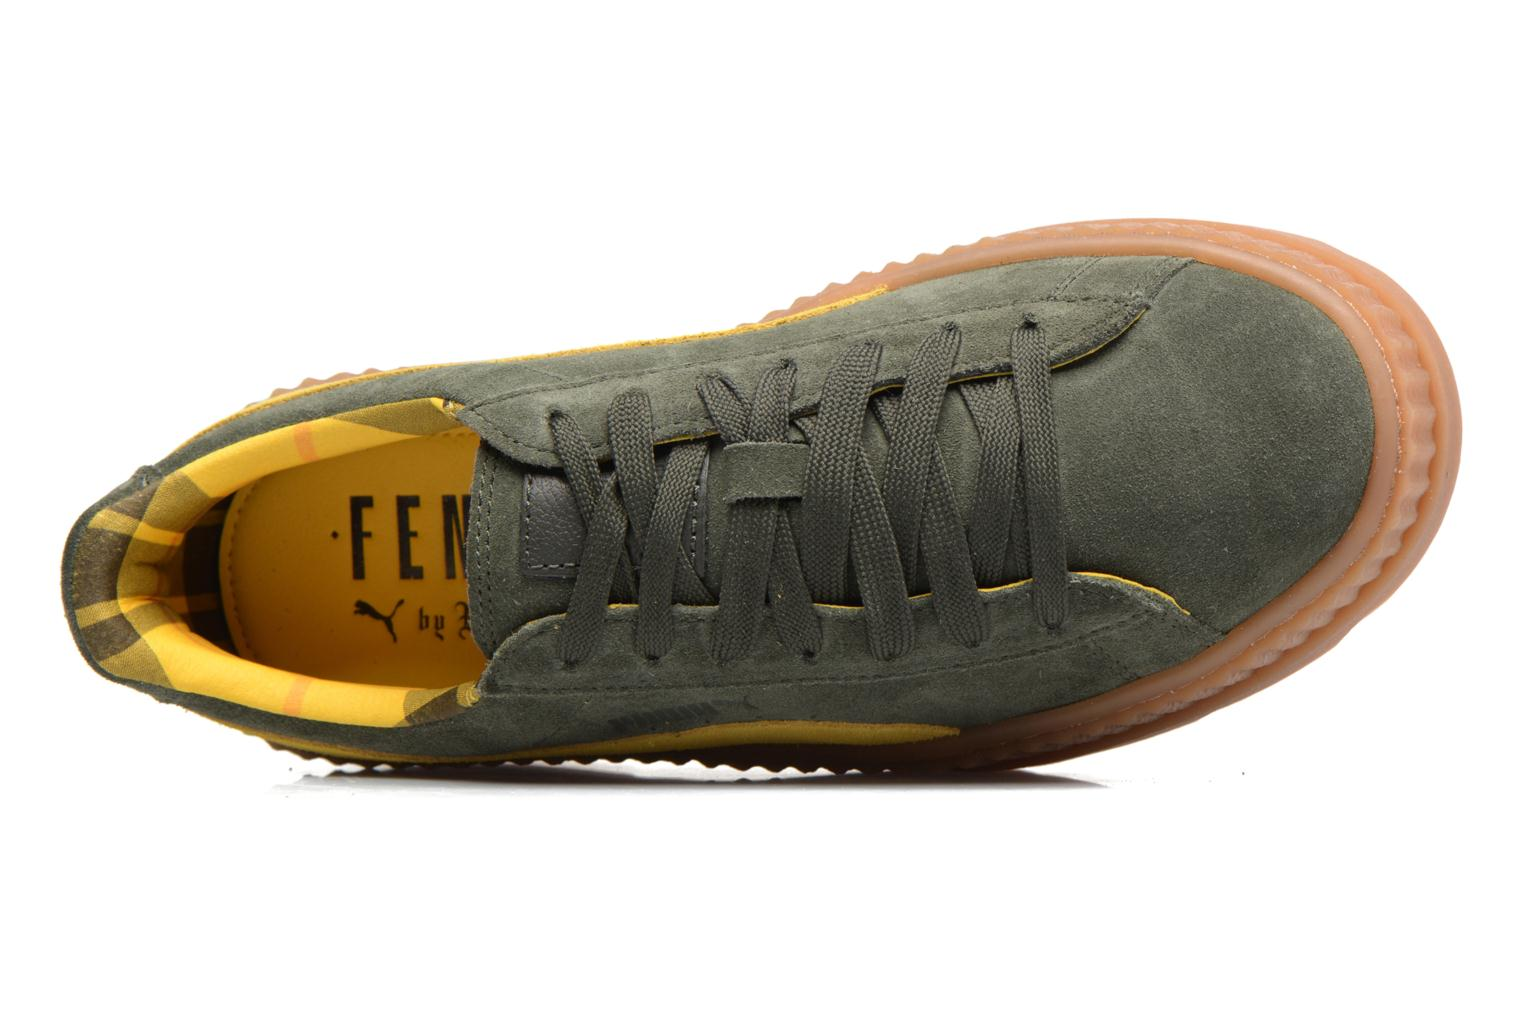 Fenty Wn Cleated Creeper Rosin